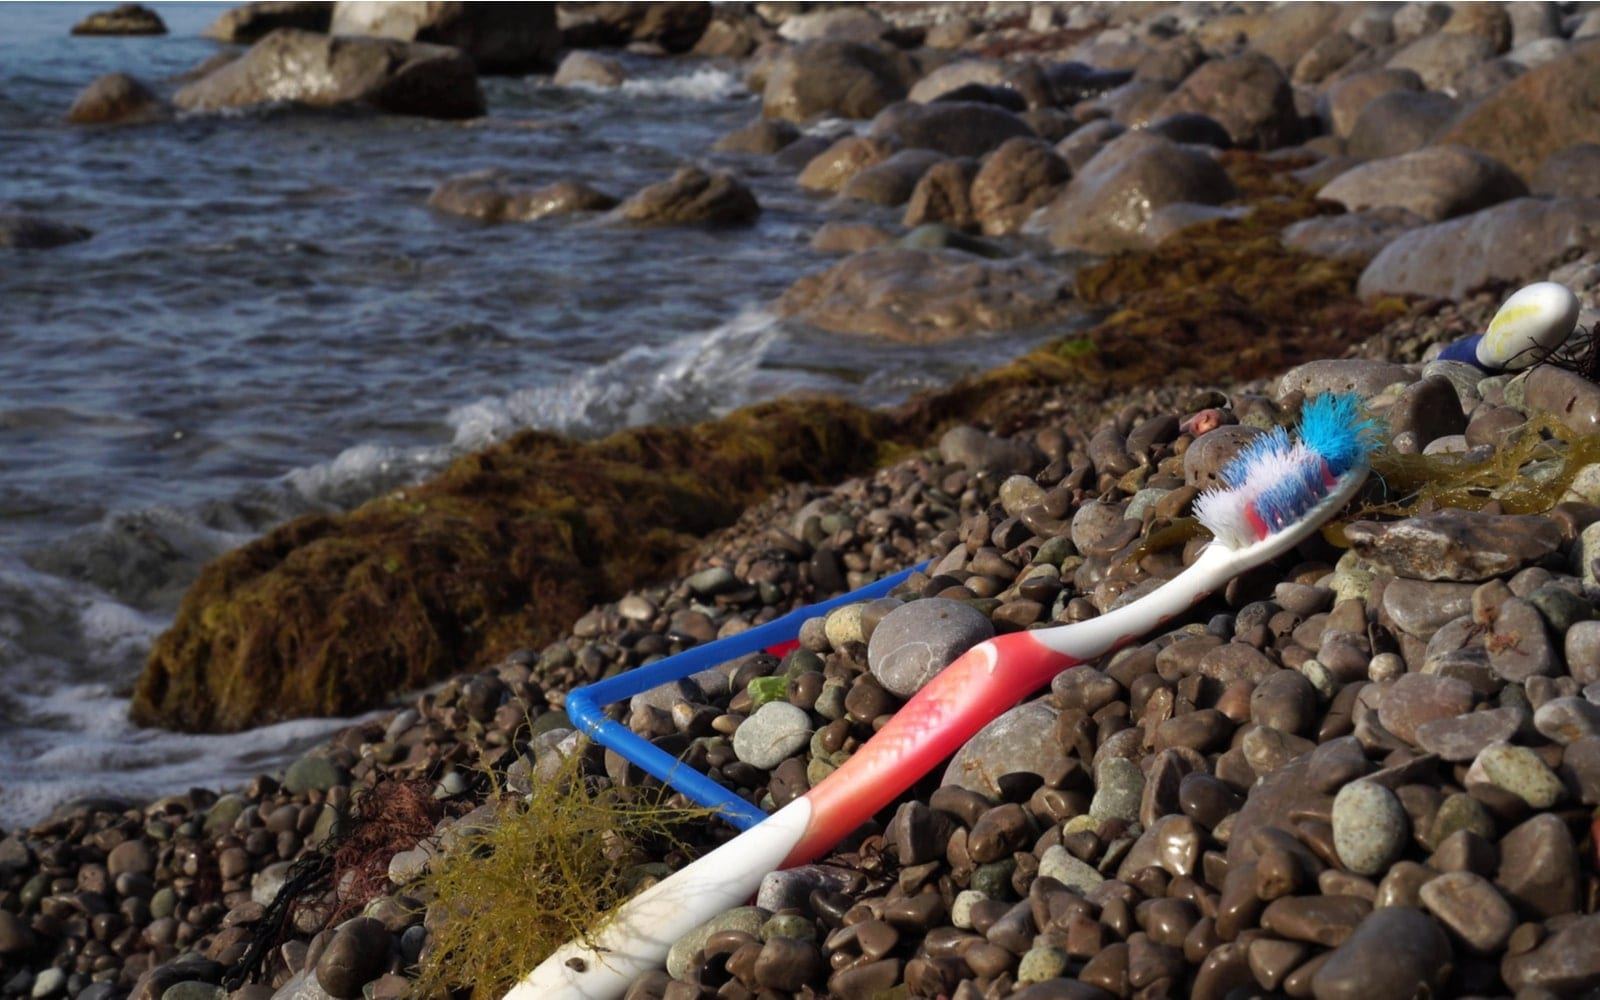 Disposable toothbrush on the shore